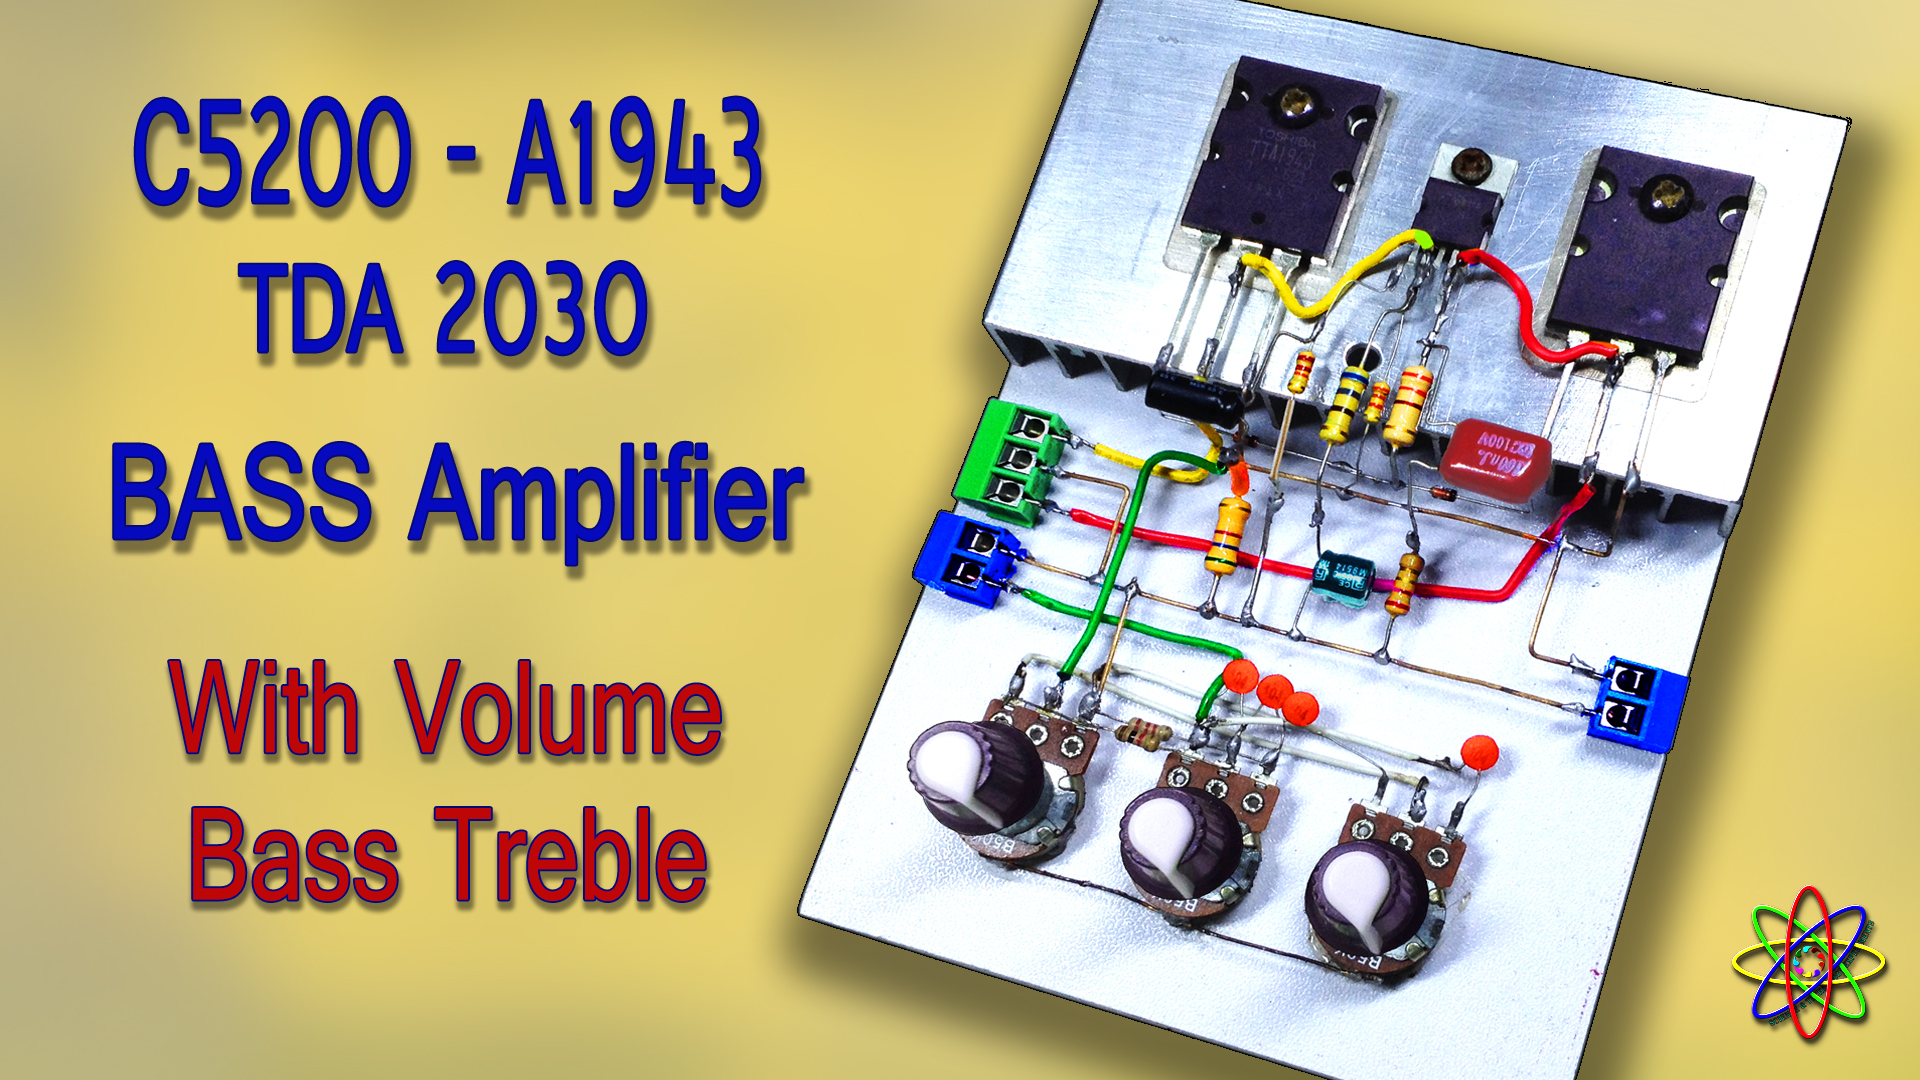 C5200 A1943 TDA2030 Amplifier DIY Homemade